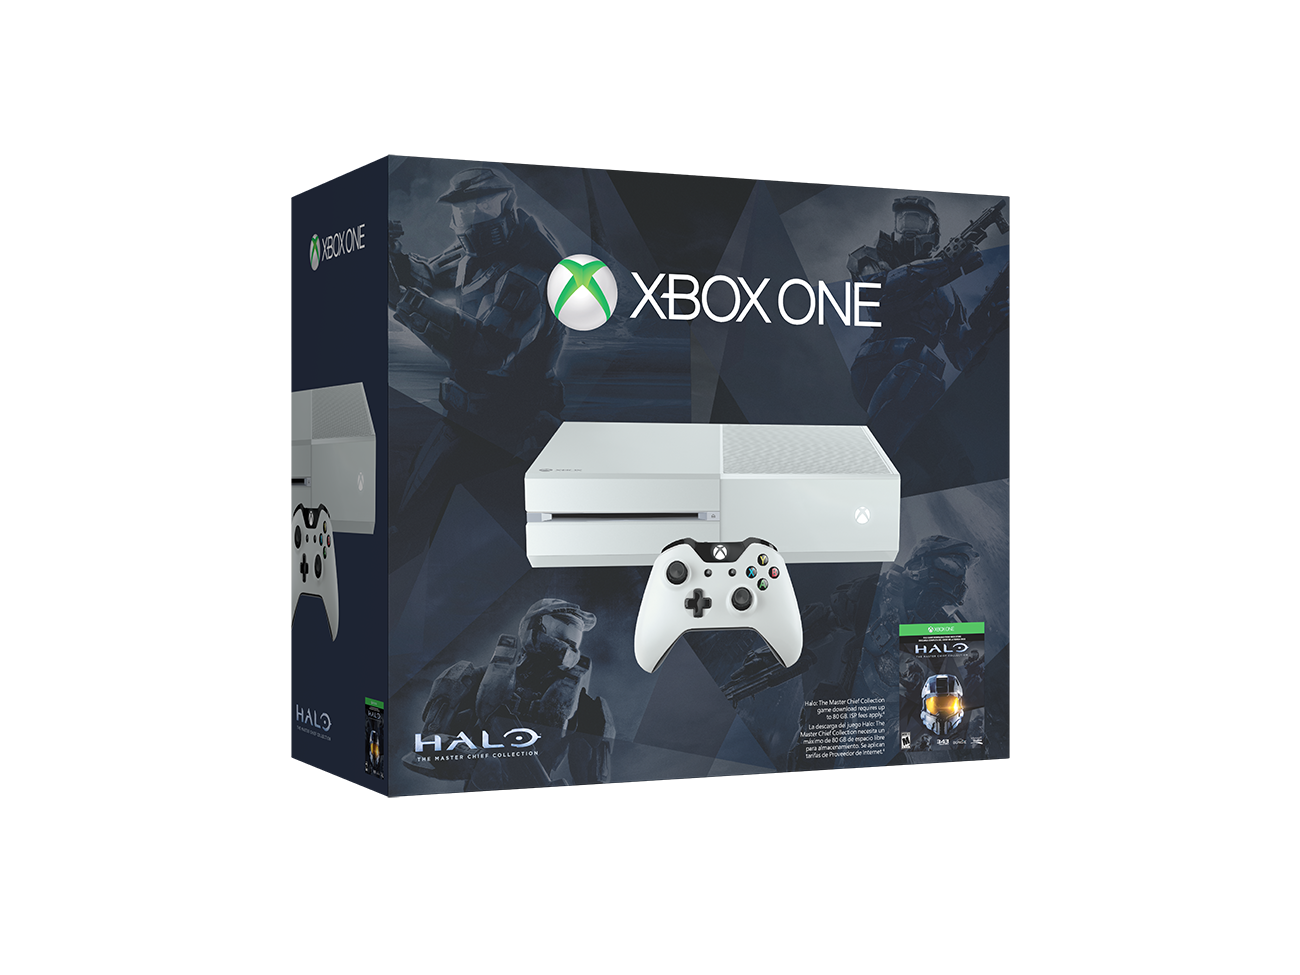 Xbox One Halo Special Edition Console The Xbox One Special Edition